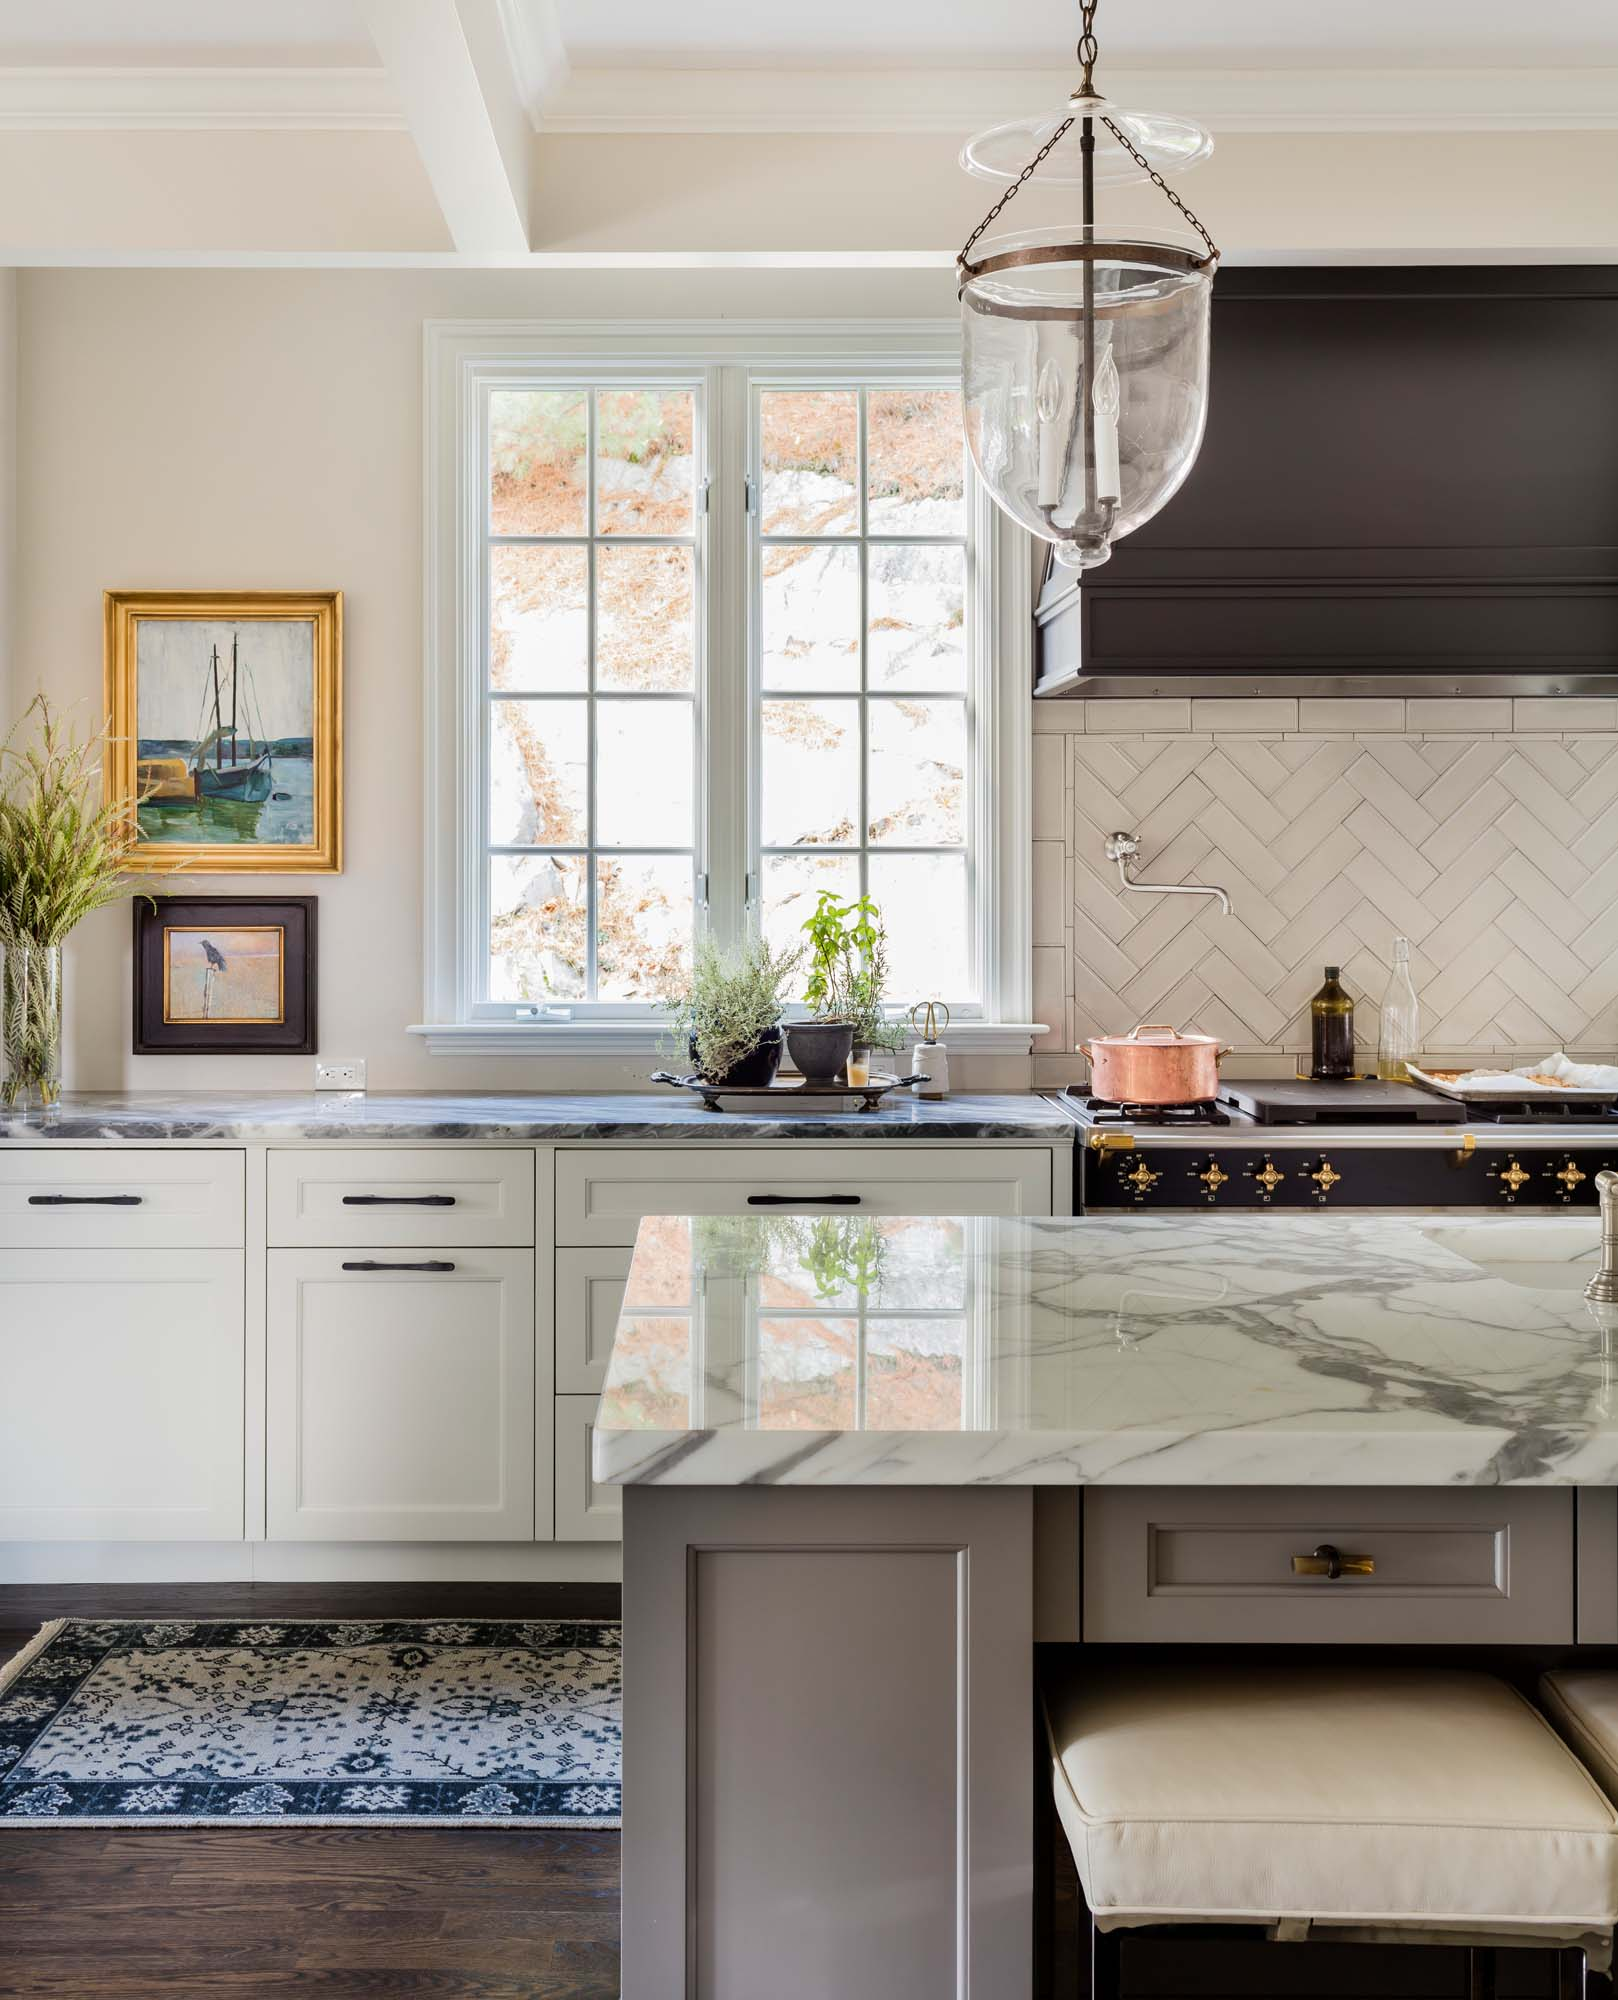 Kitchen with center island and  not ceramic  countertop, hardwood floor and drawers, Calcutta marble, Lacanche Sully range, Lacanche, perrin, rohl, copper pot, custom white cabinet, sherwin williams tricorn black, benjamin moore white dove, horn cabinet pull, horn handle